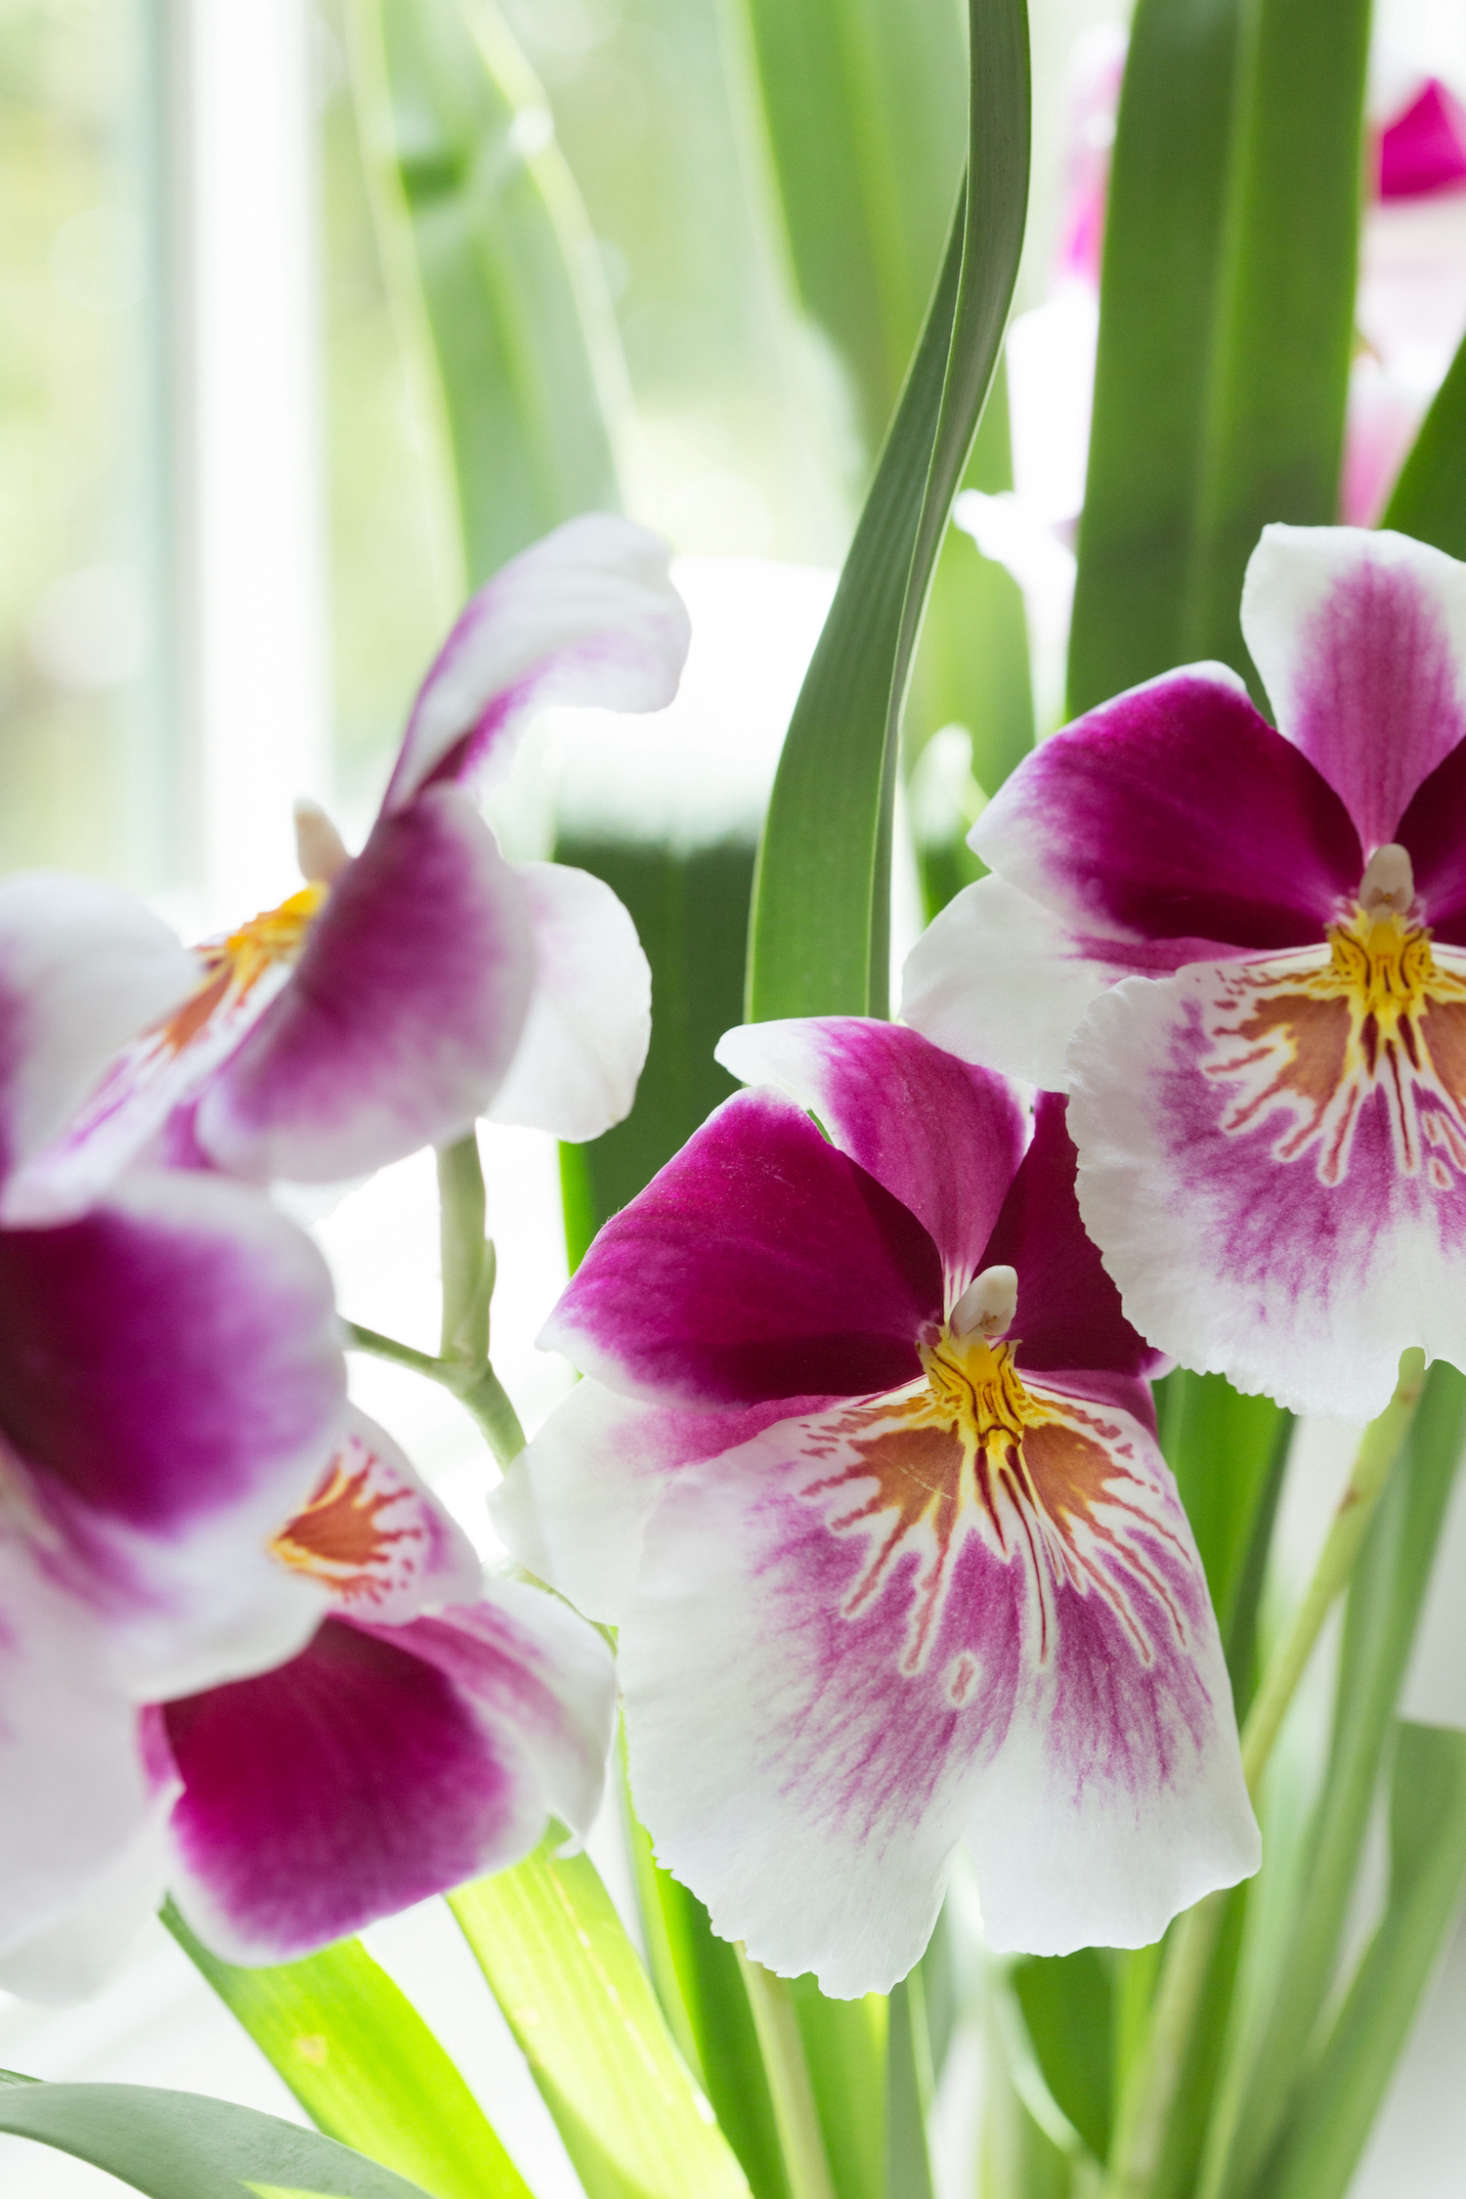 Known for its lovely perfume, a Miltonia orchid is the one that smells like Hawaii. Close your eyes and hear gentle waves as they wash over the warm sand at your feet.